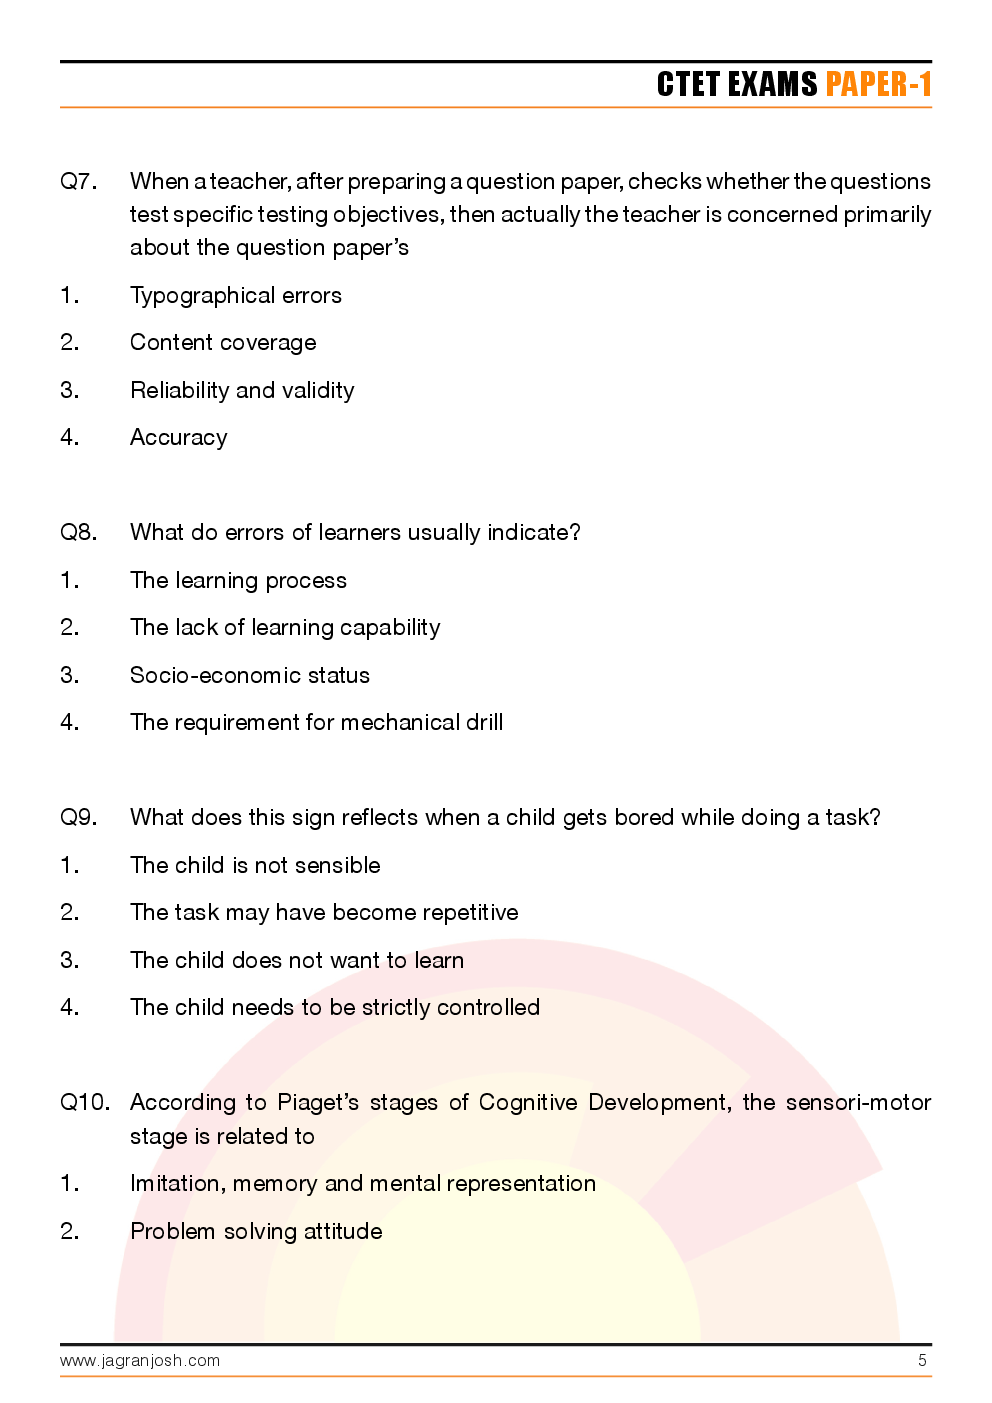 CTET Paper-1 Solved Questions and Answers - Page 5